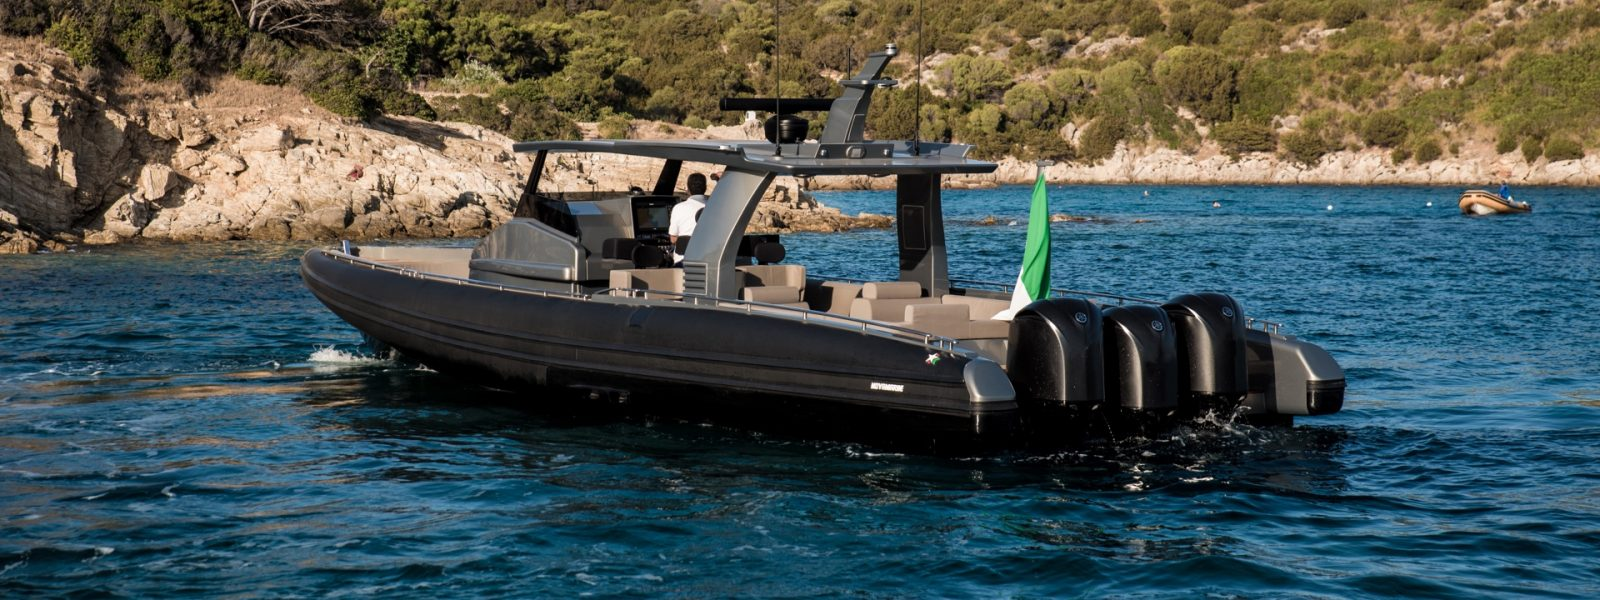 Luxury yacht for Sale | Black Shiver 140 (2015) by Novamarine